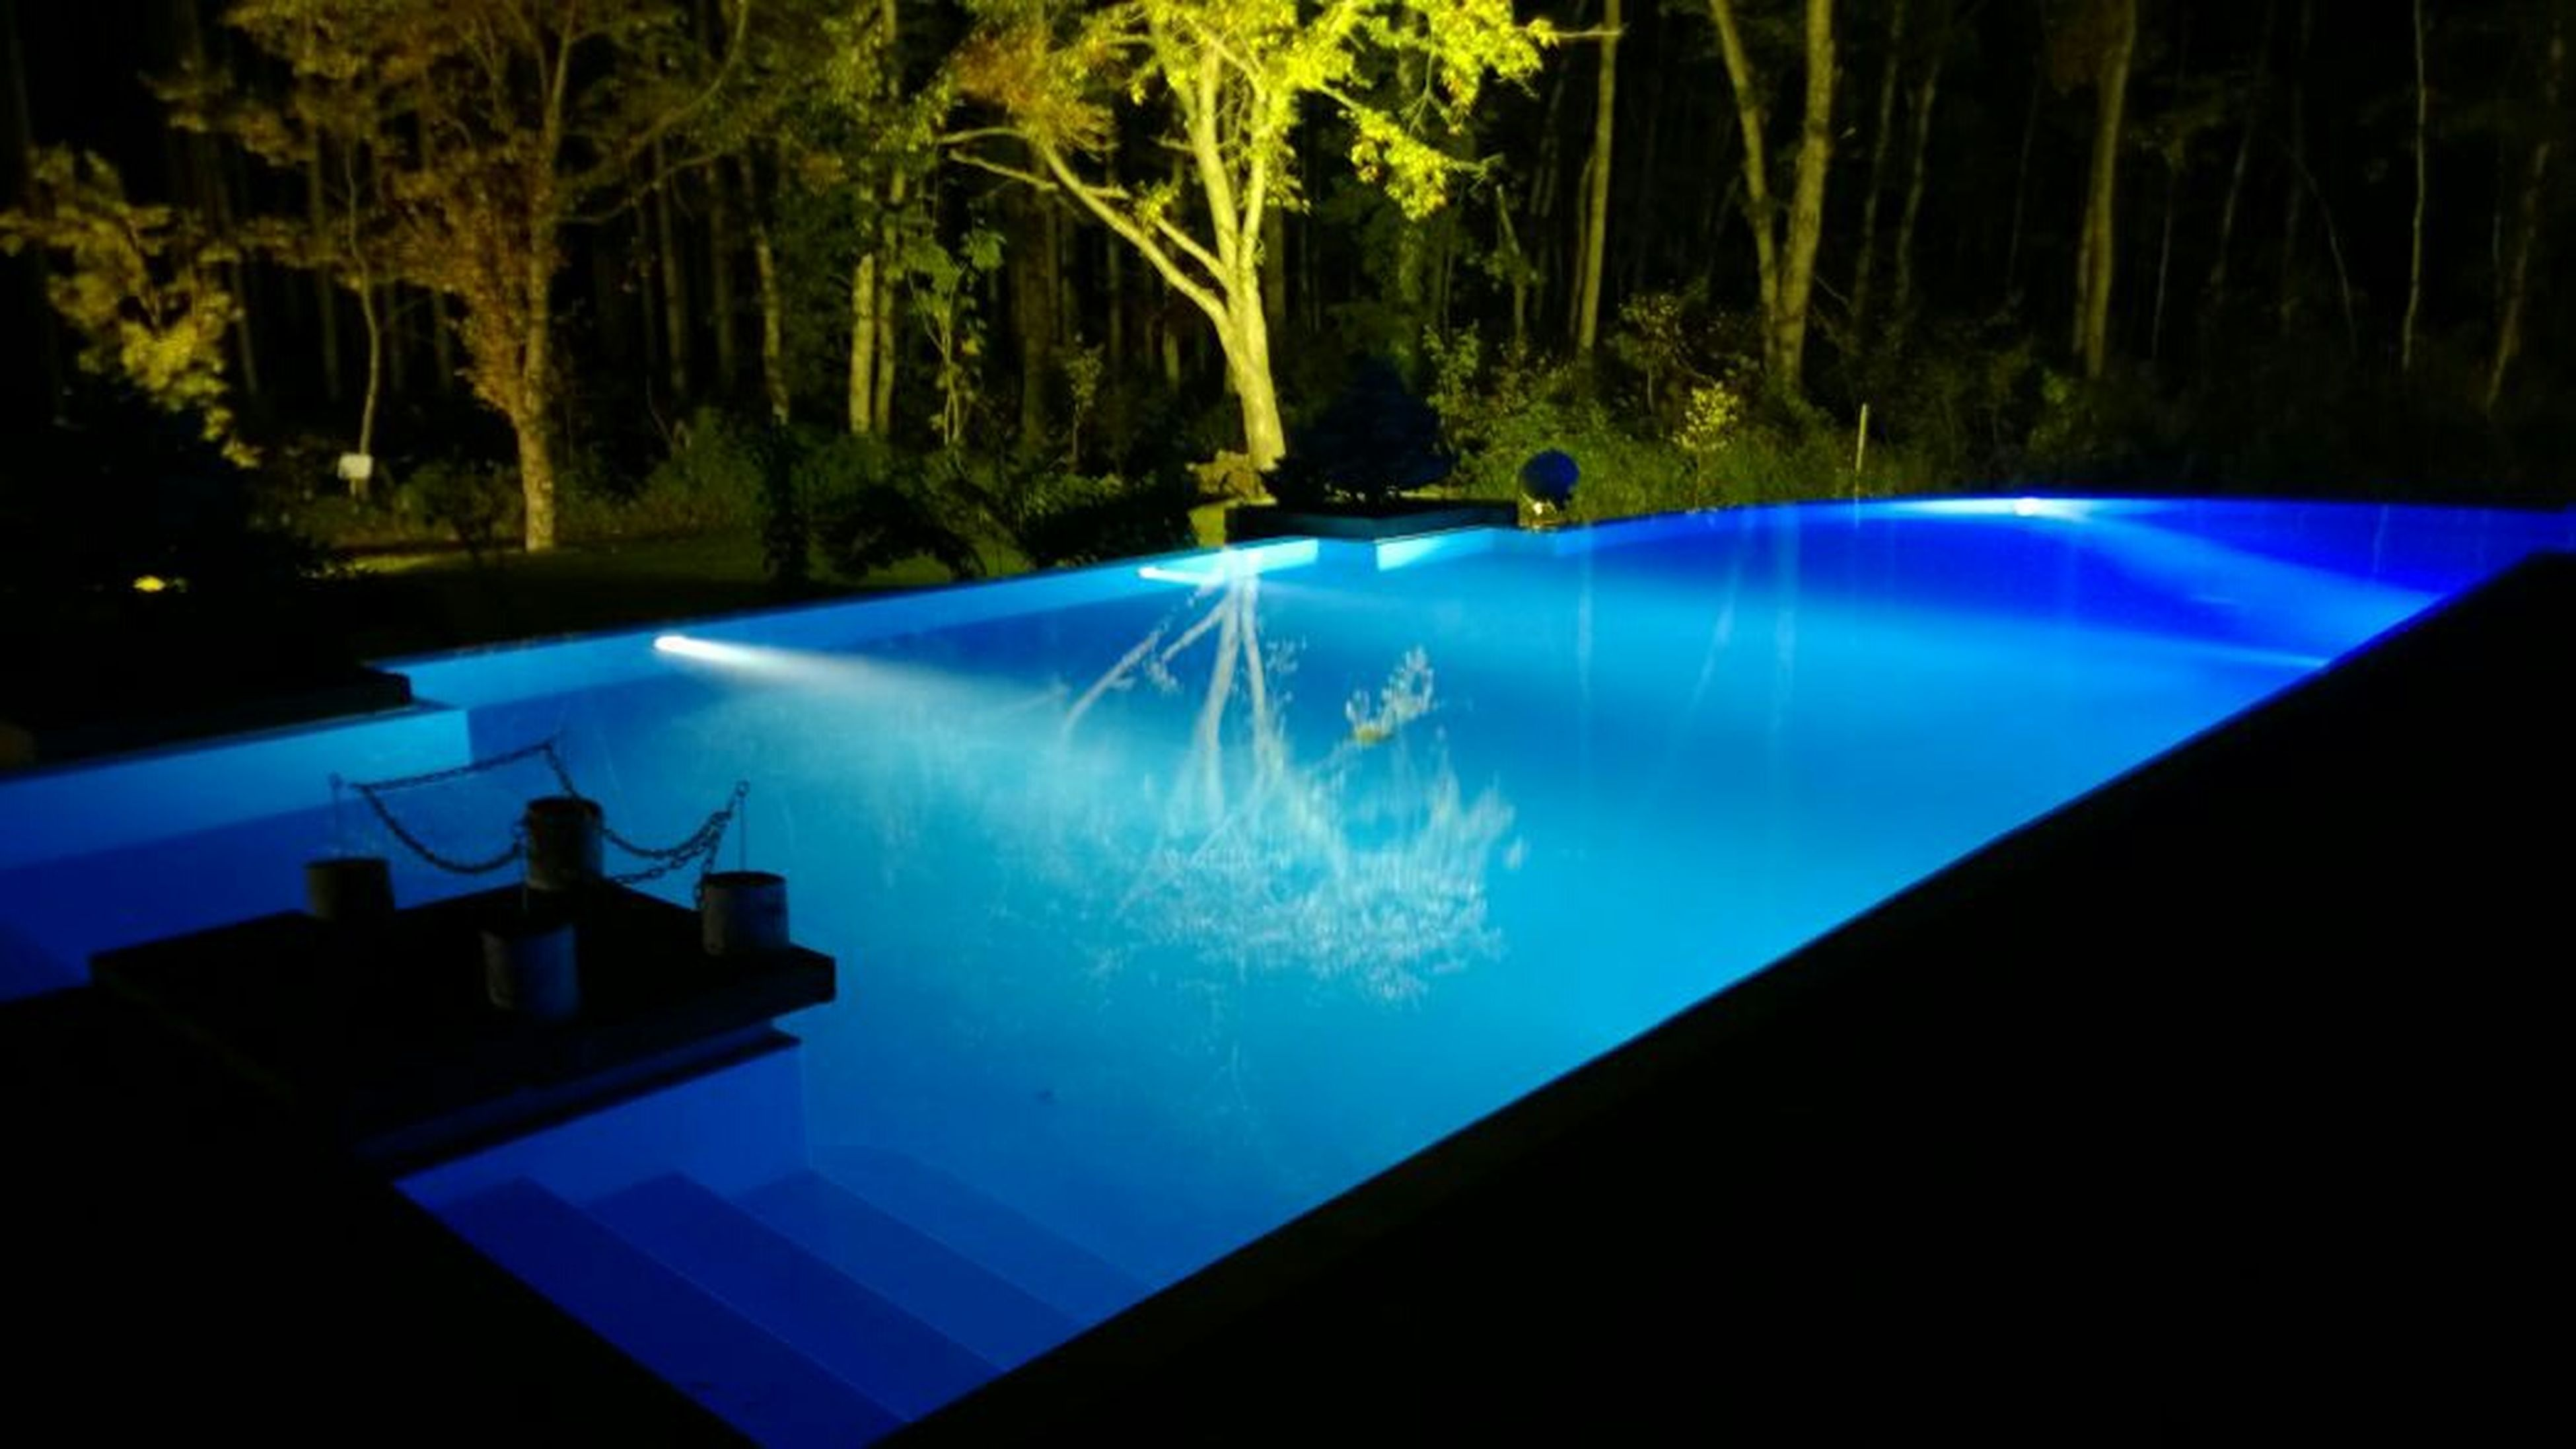 blue, water, tree, beauty in nature, nature, night, swimming pool, scenics, tranquility, no people, illuminated, tranquil scene, green color, turquoise colored, outdoors, growth, reflection, idyllic, purple, high angle view